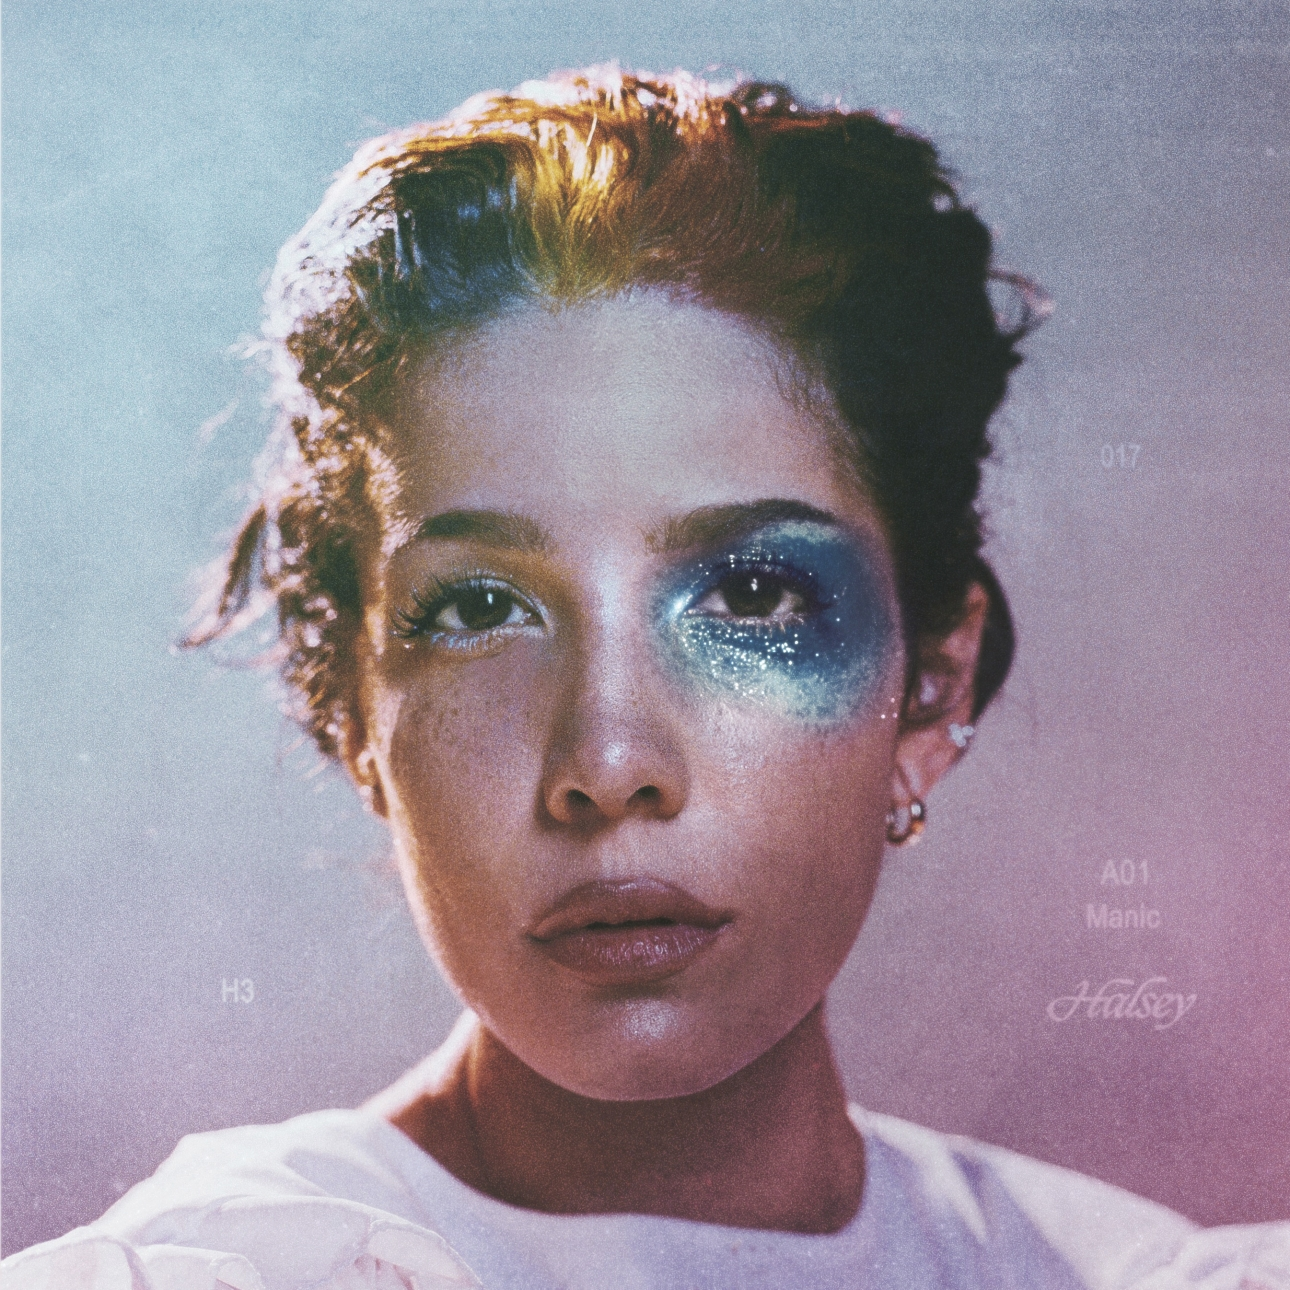 Manic is Halsey's most complete work to date